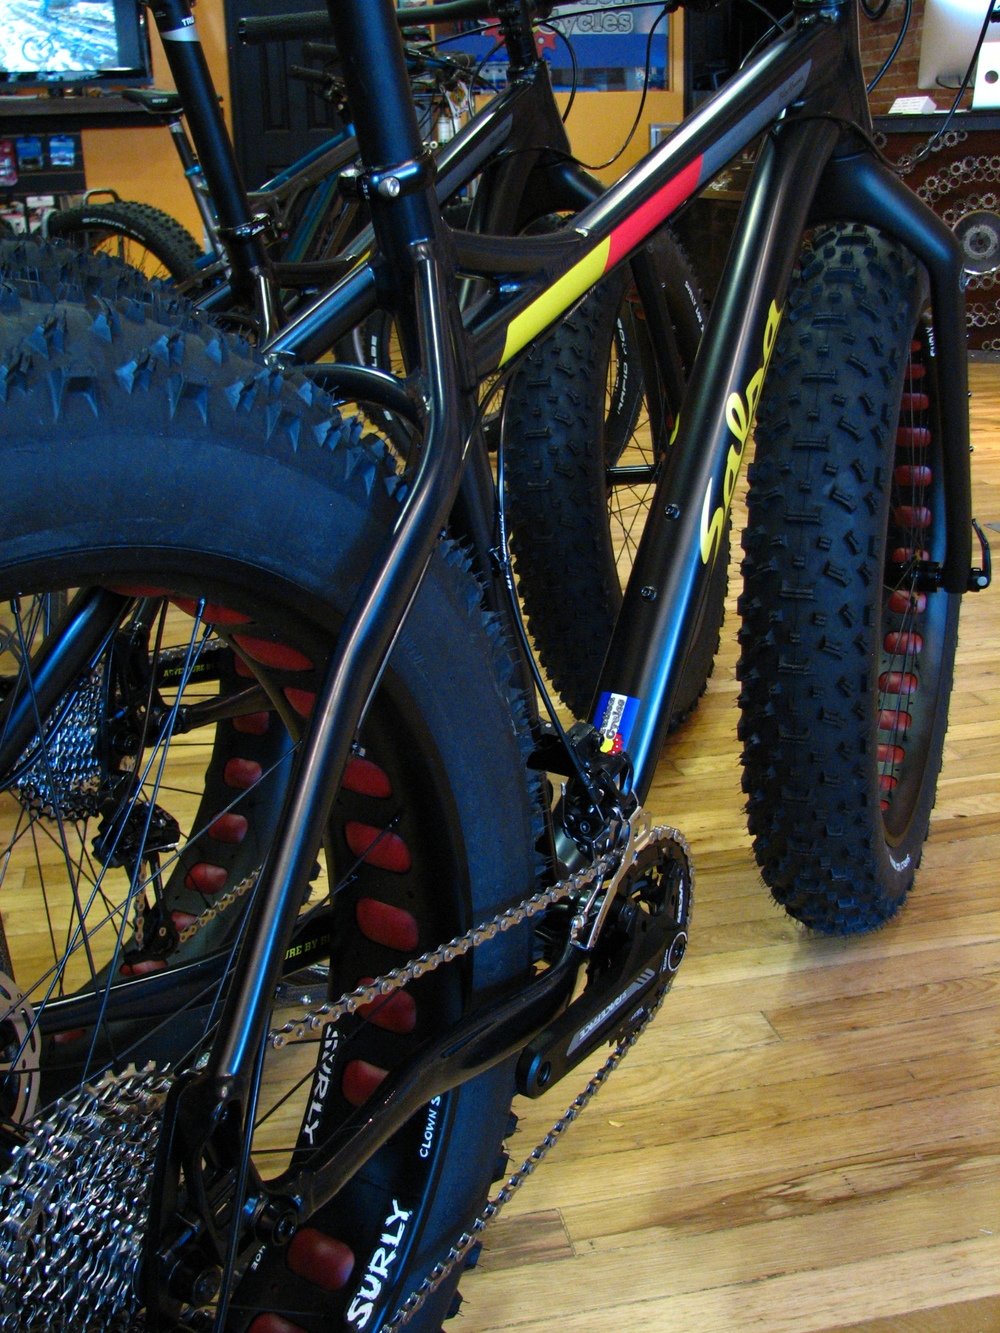 This version of the Blackborow is meant for backcountry exploration or trail crawling. A rigid fork, wide-range 2x10, and more aggressive tires make lots of sense in the deep snow.